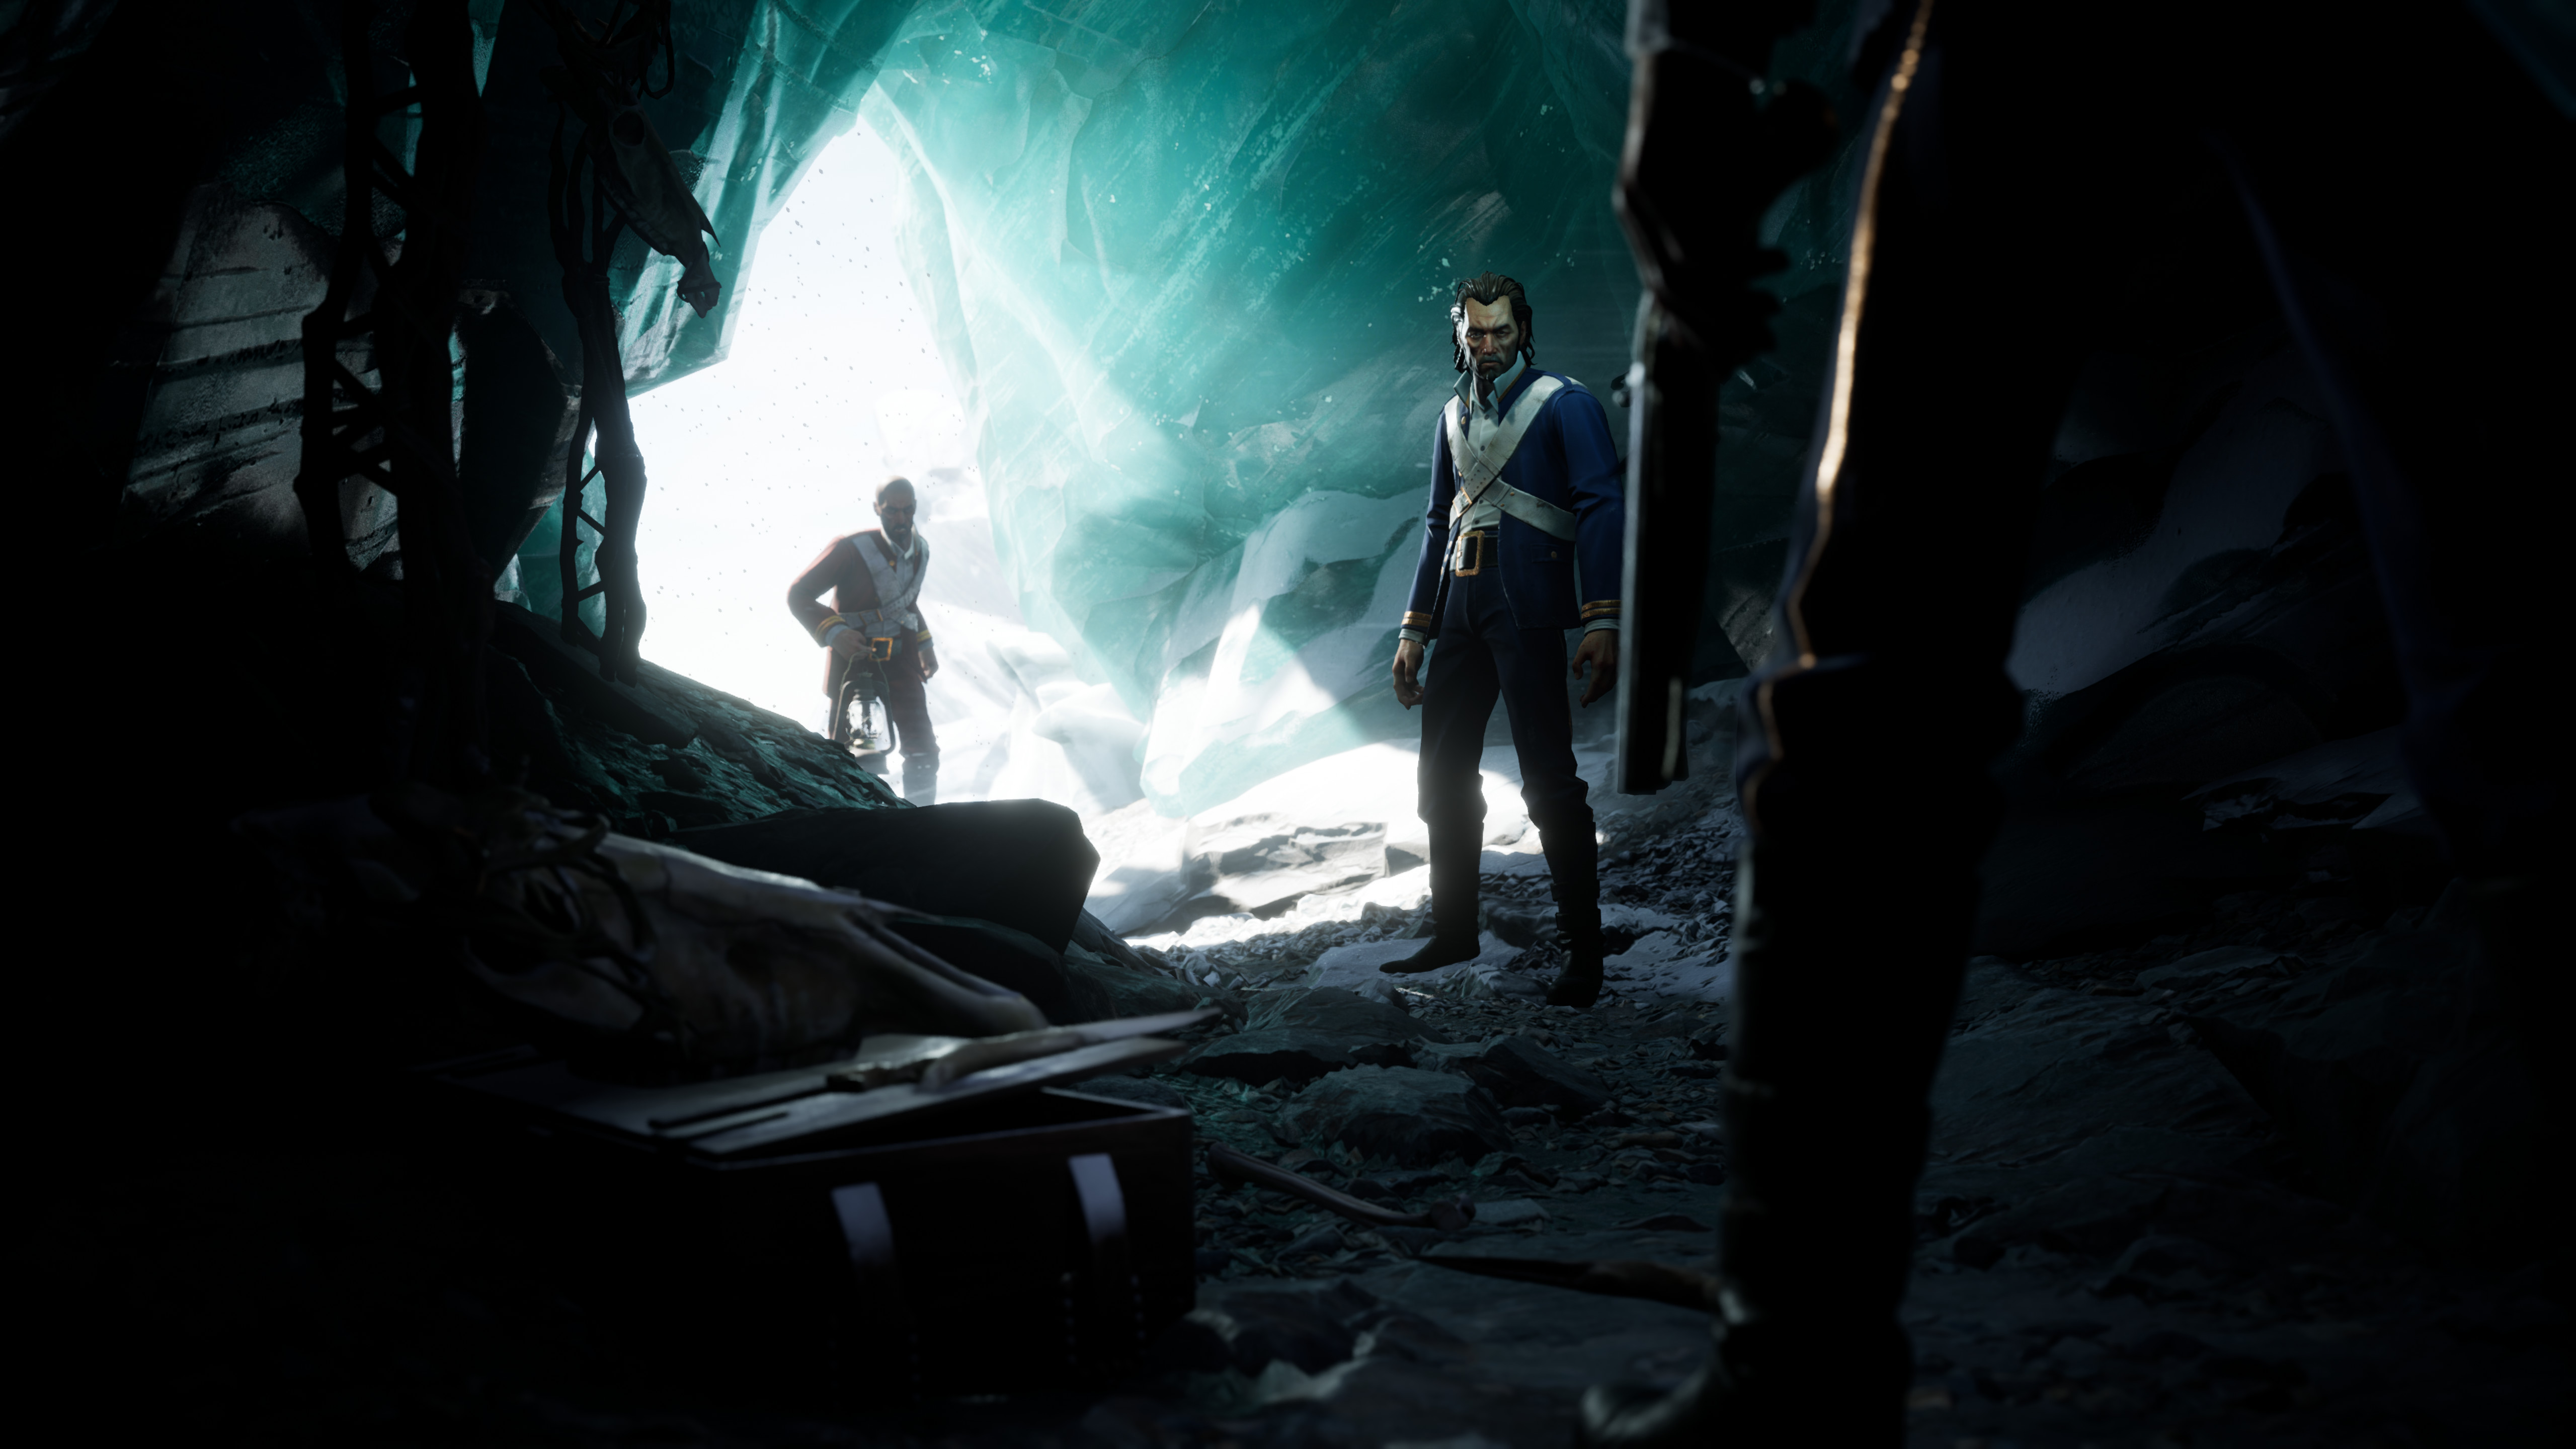 Dread Hunger - three people stand in an ice cave, one of whom is armed with a simple club